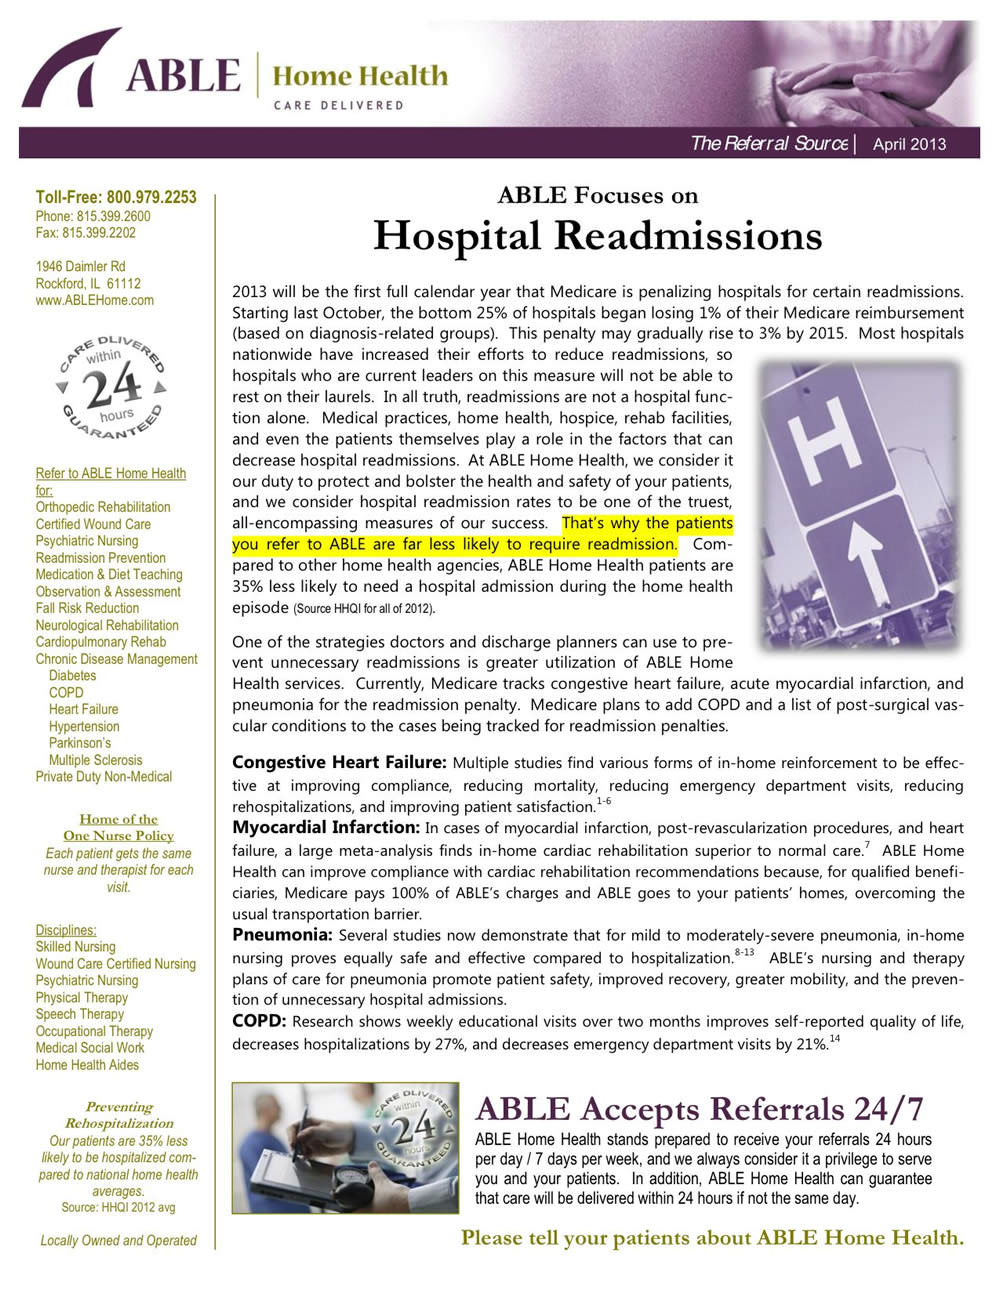 HospReadmissions-1